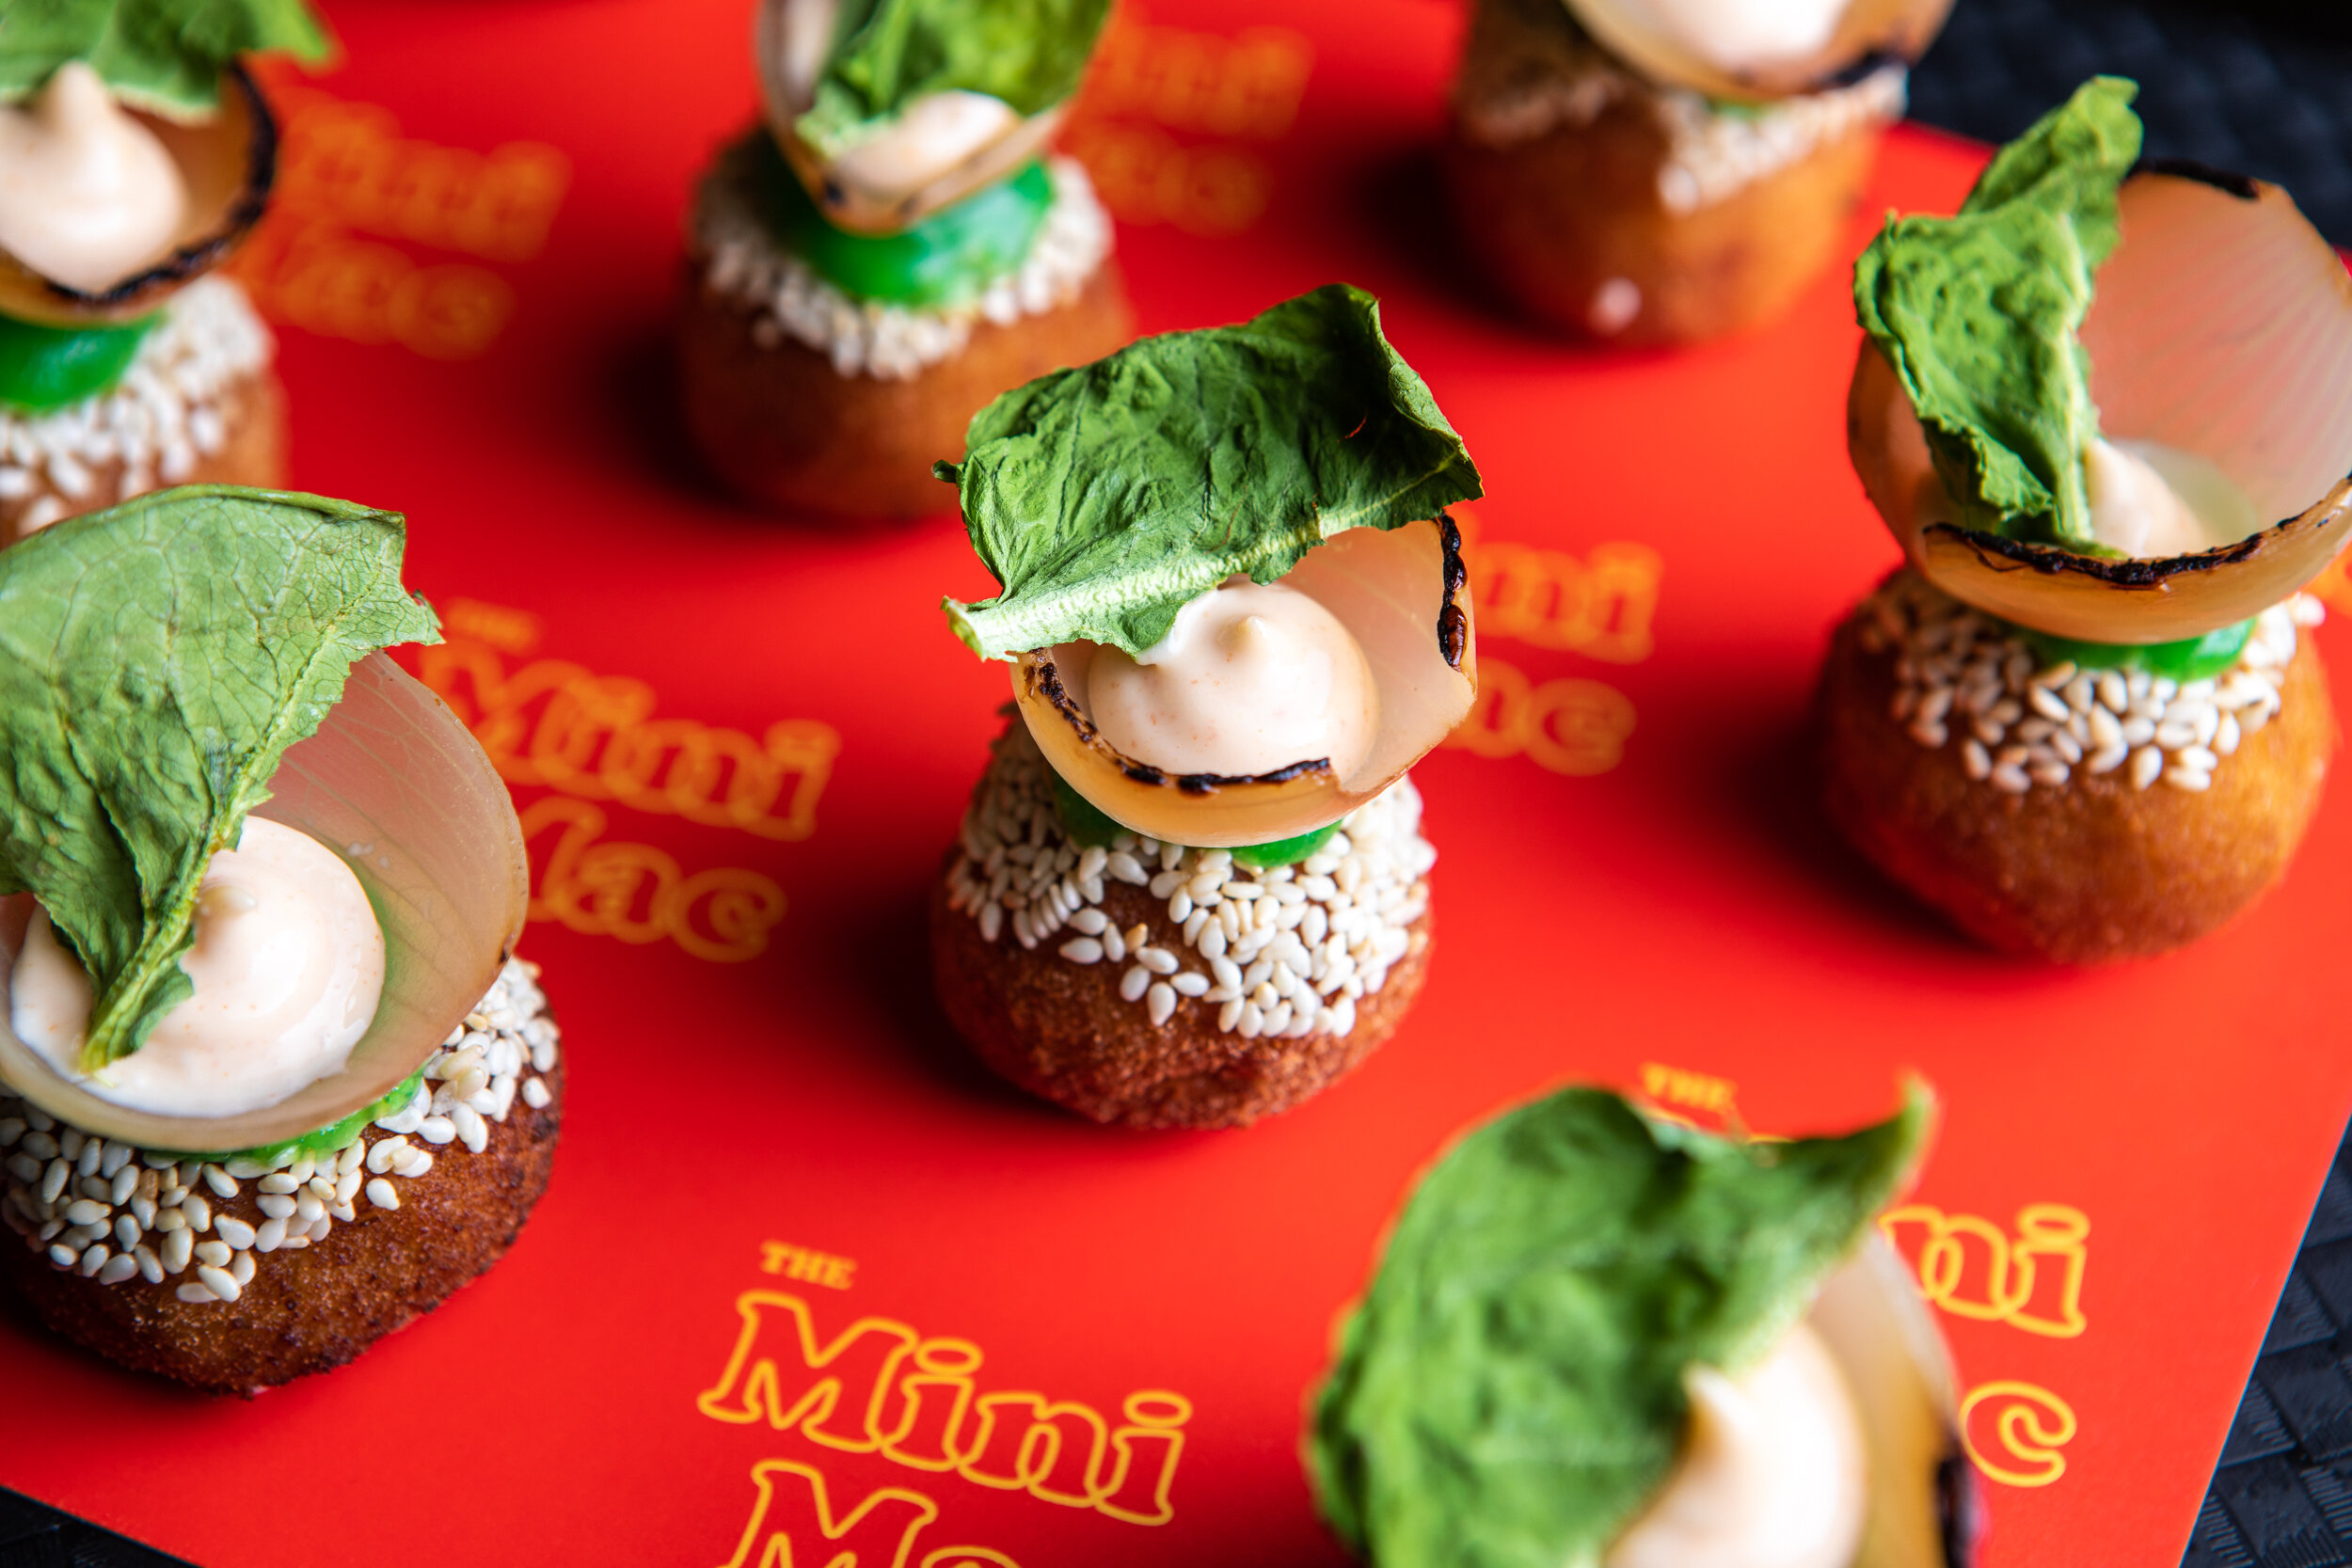 dalton-catering-and-events-canape-2